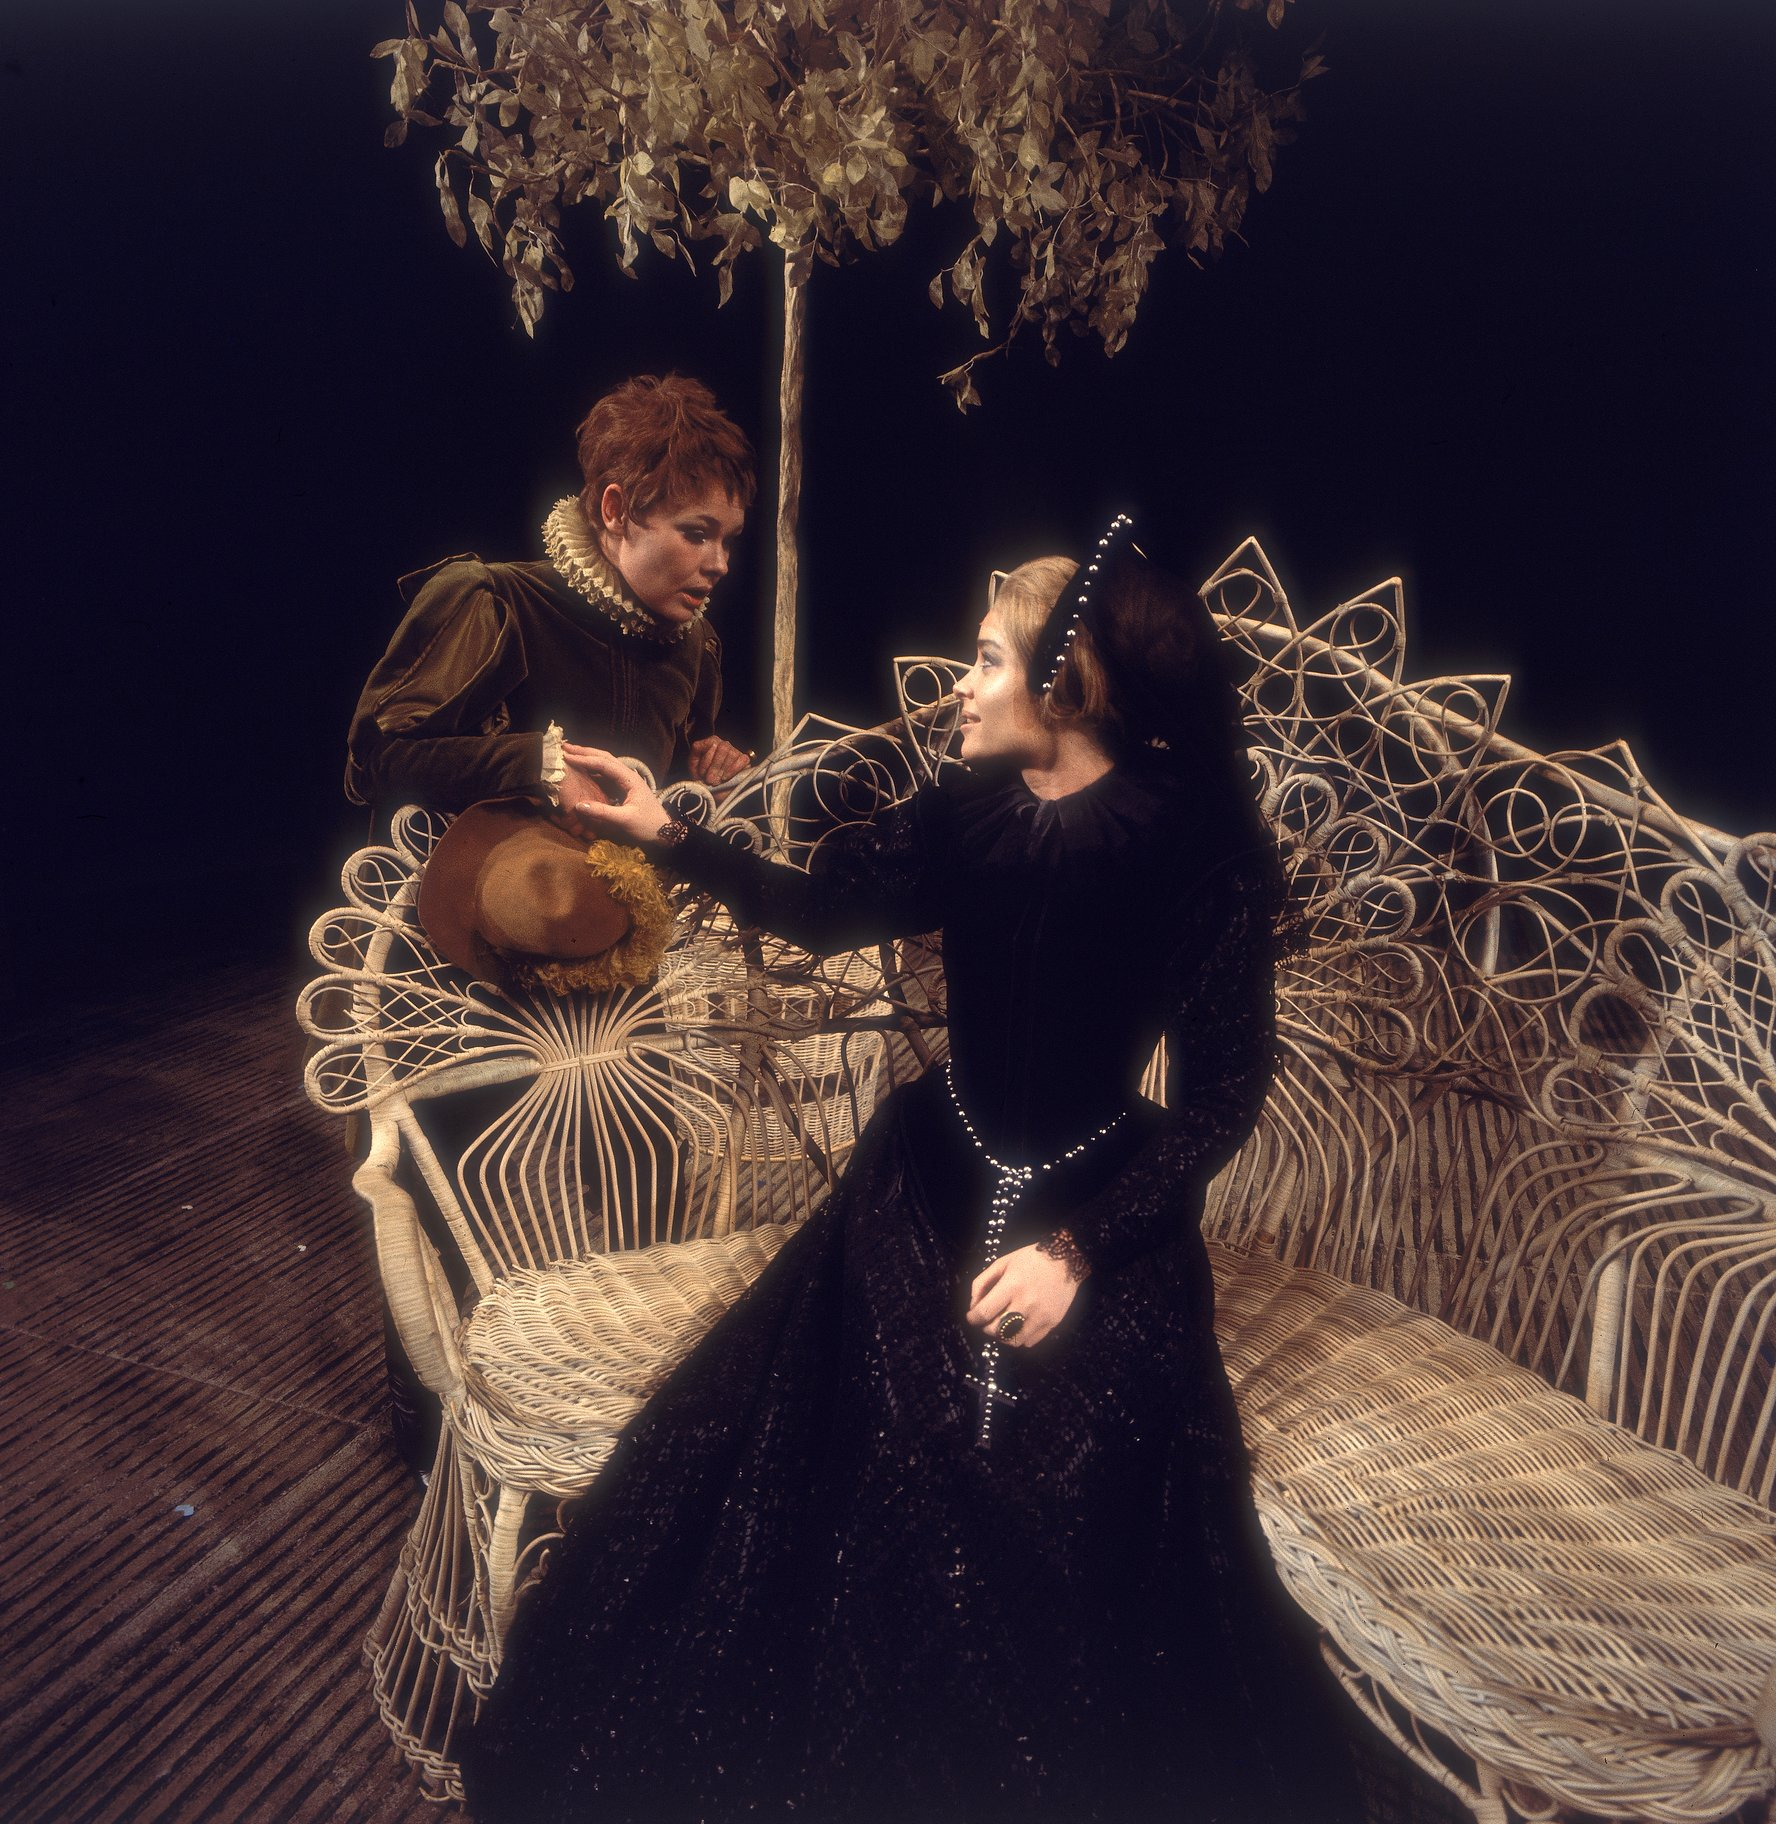 Olivia reaches out to 'Cesario', touching 'his' hand over the back of a garden bench in the 1969 production of Twelfth Night.